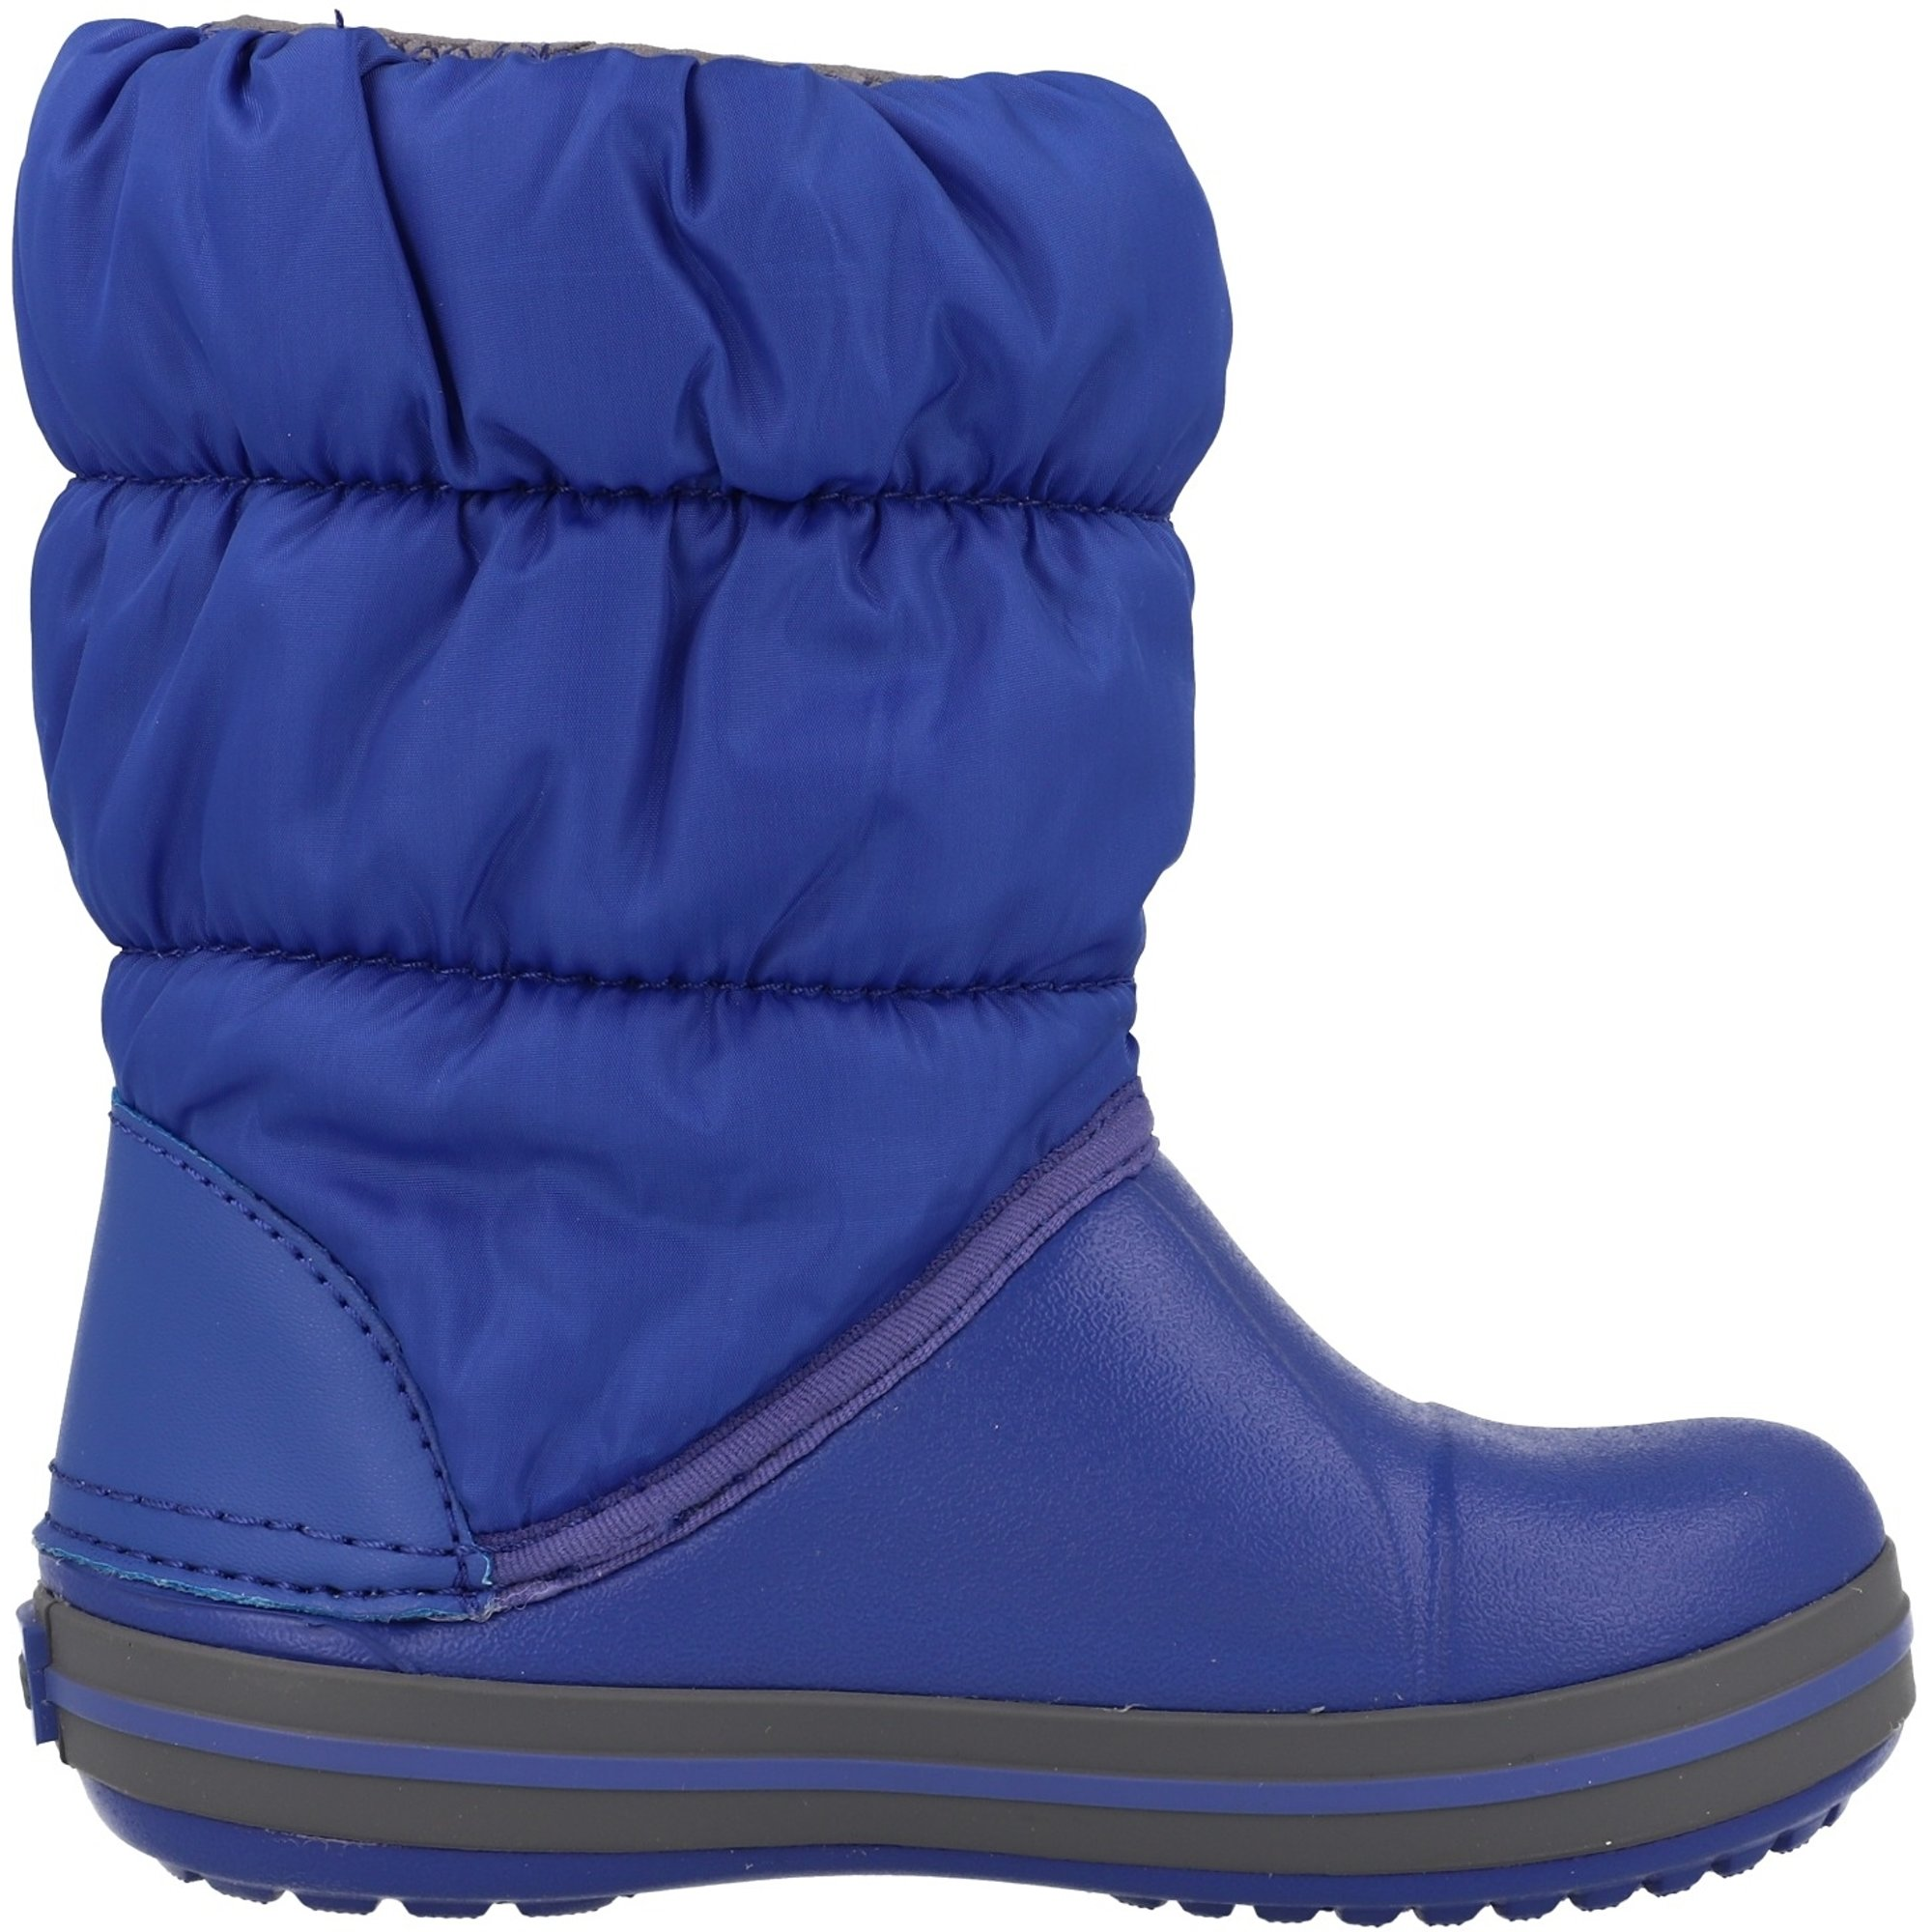 Crocs Kids Winter Puff Boot Cerulean Blue/Light Grey Nylon